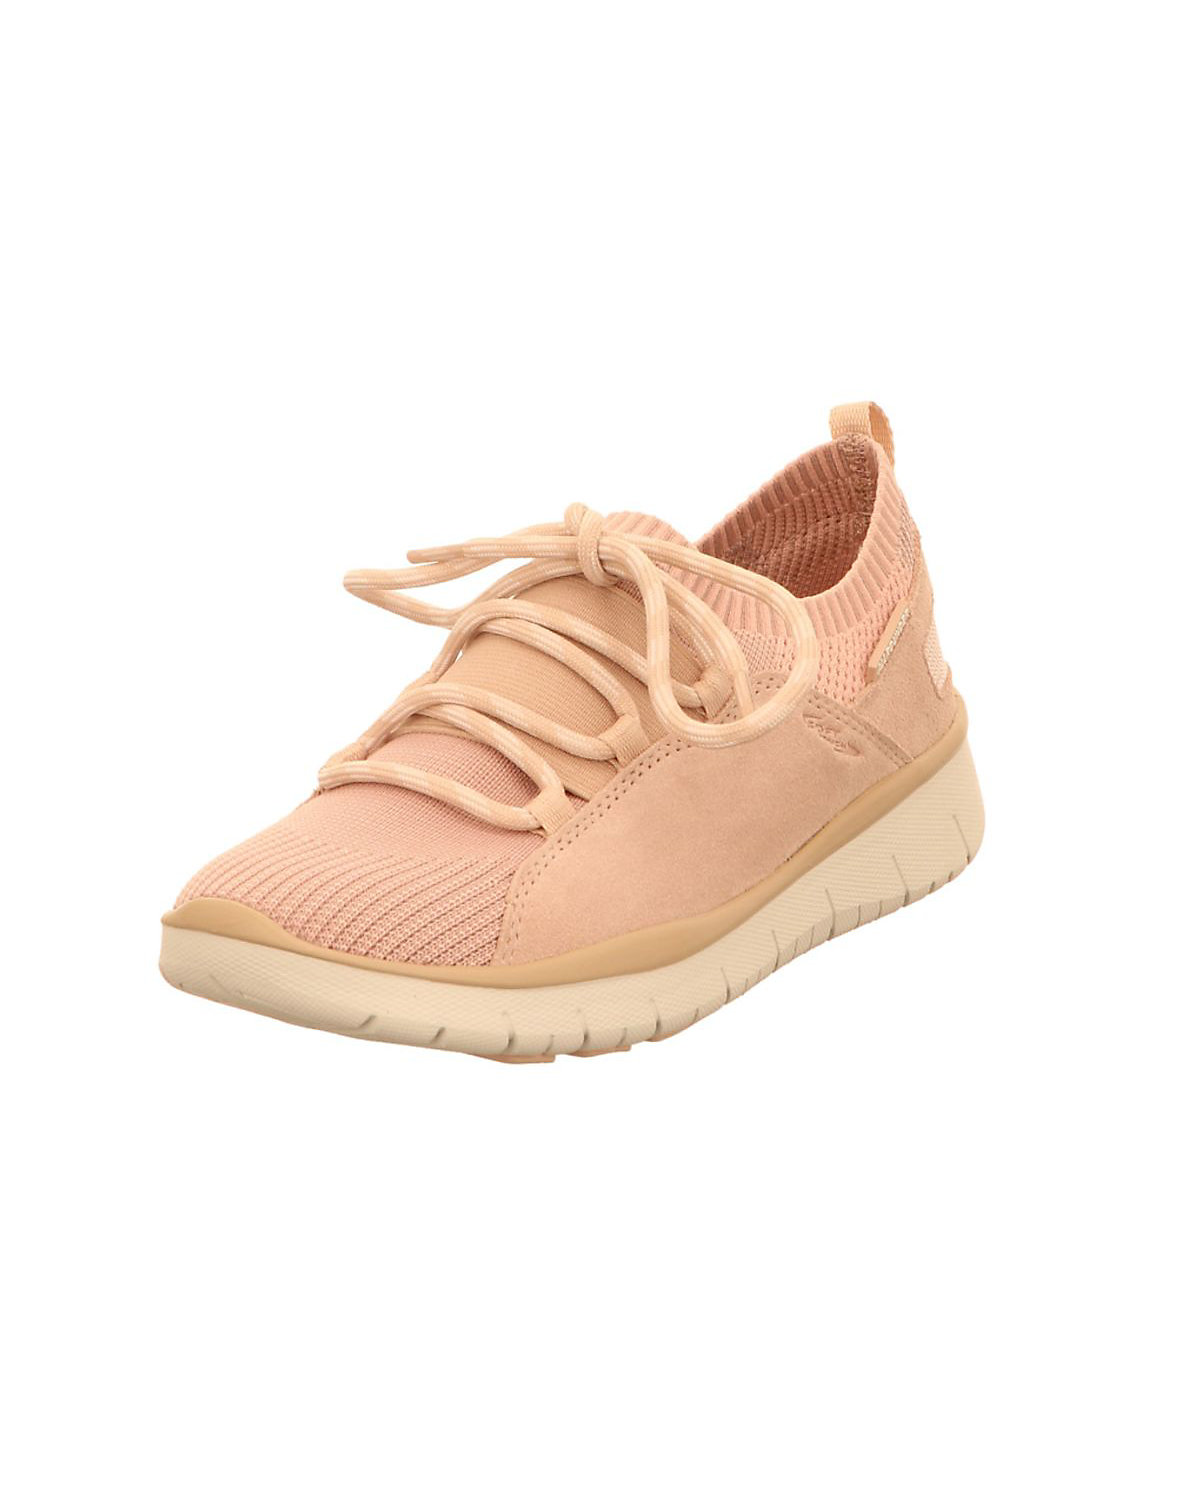 ALLROUNDER BY MEPHISTO, Sneakers Sneakers MEPHISTO, Low, rosa cb4902